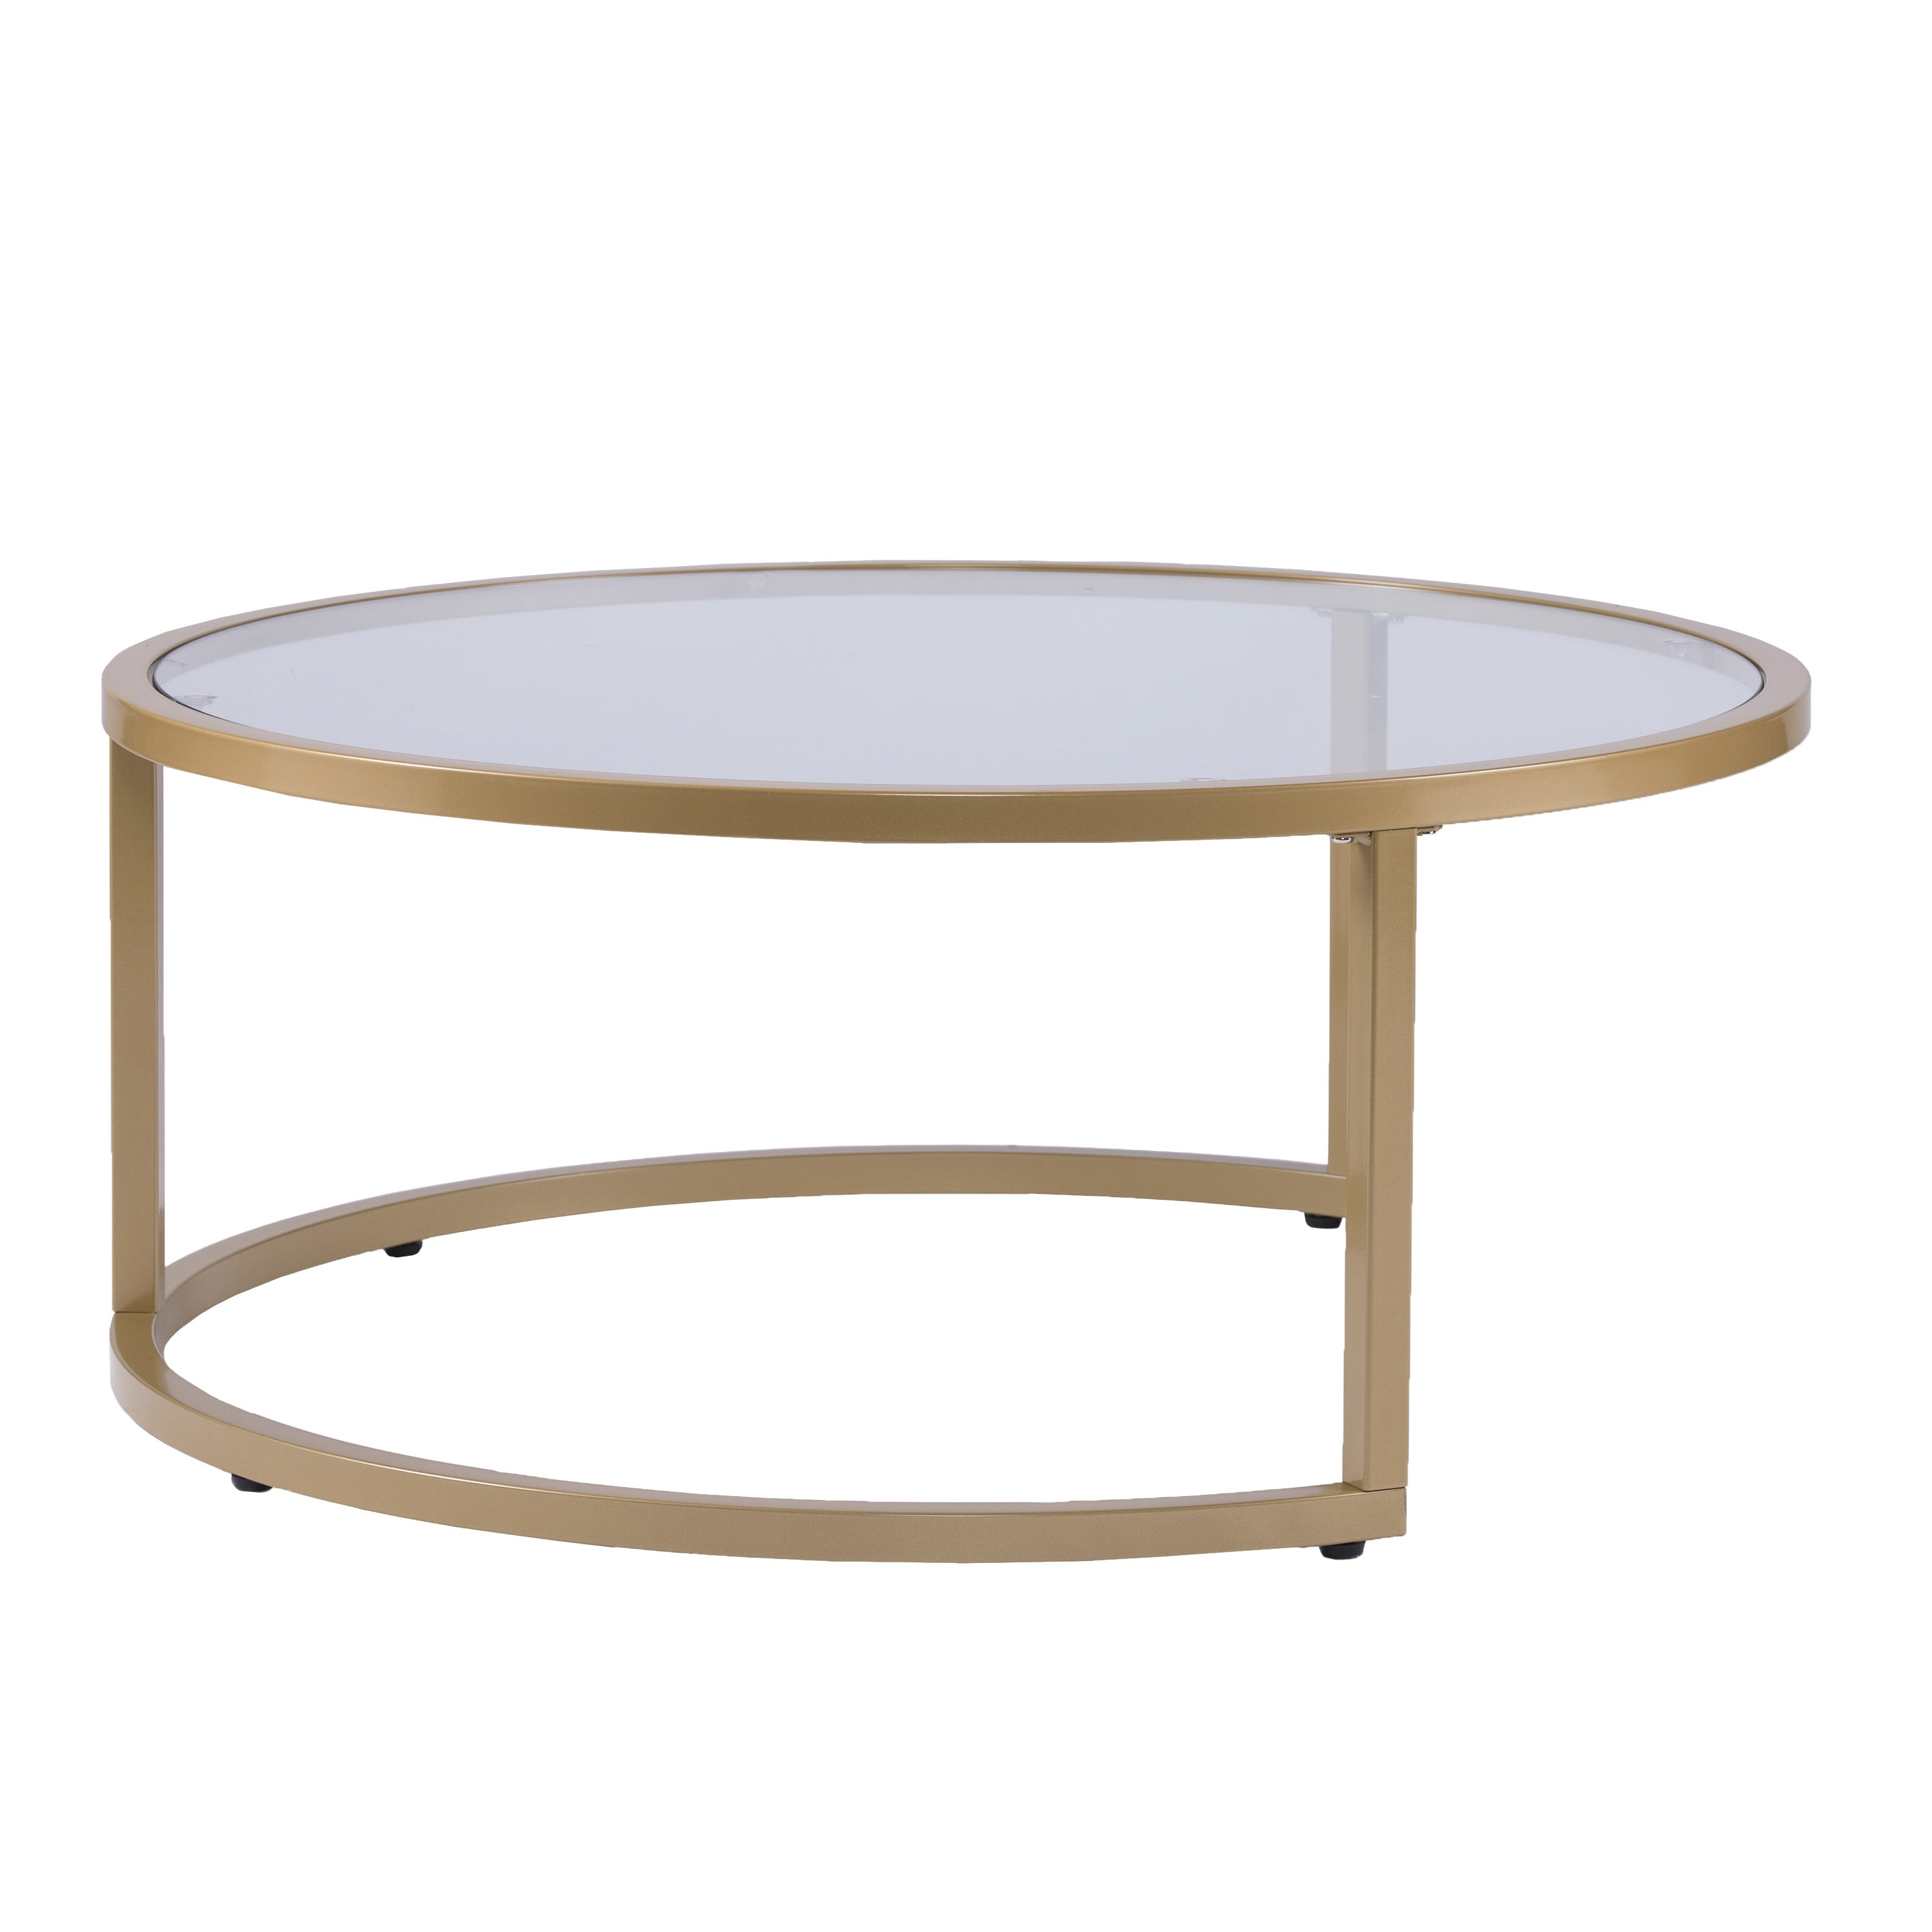 Silver Orchid Grant Glam Nesting Cocktail Table 2 Piece Set With Regard To 2019 Silver Orchid Grant Glam Nesting Cocktail Tables (View 5 of 20)